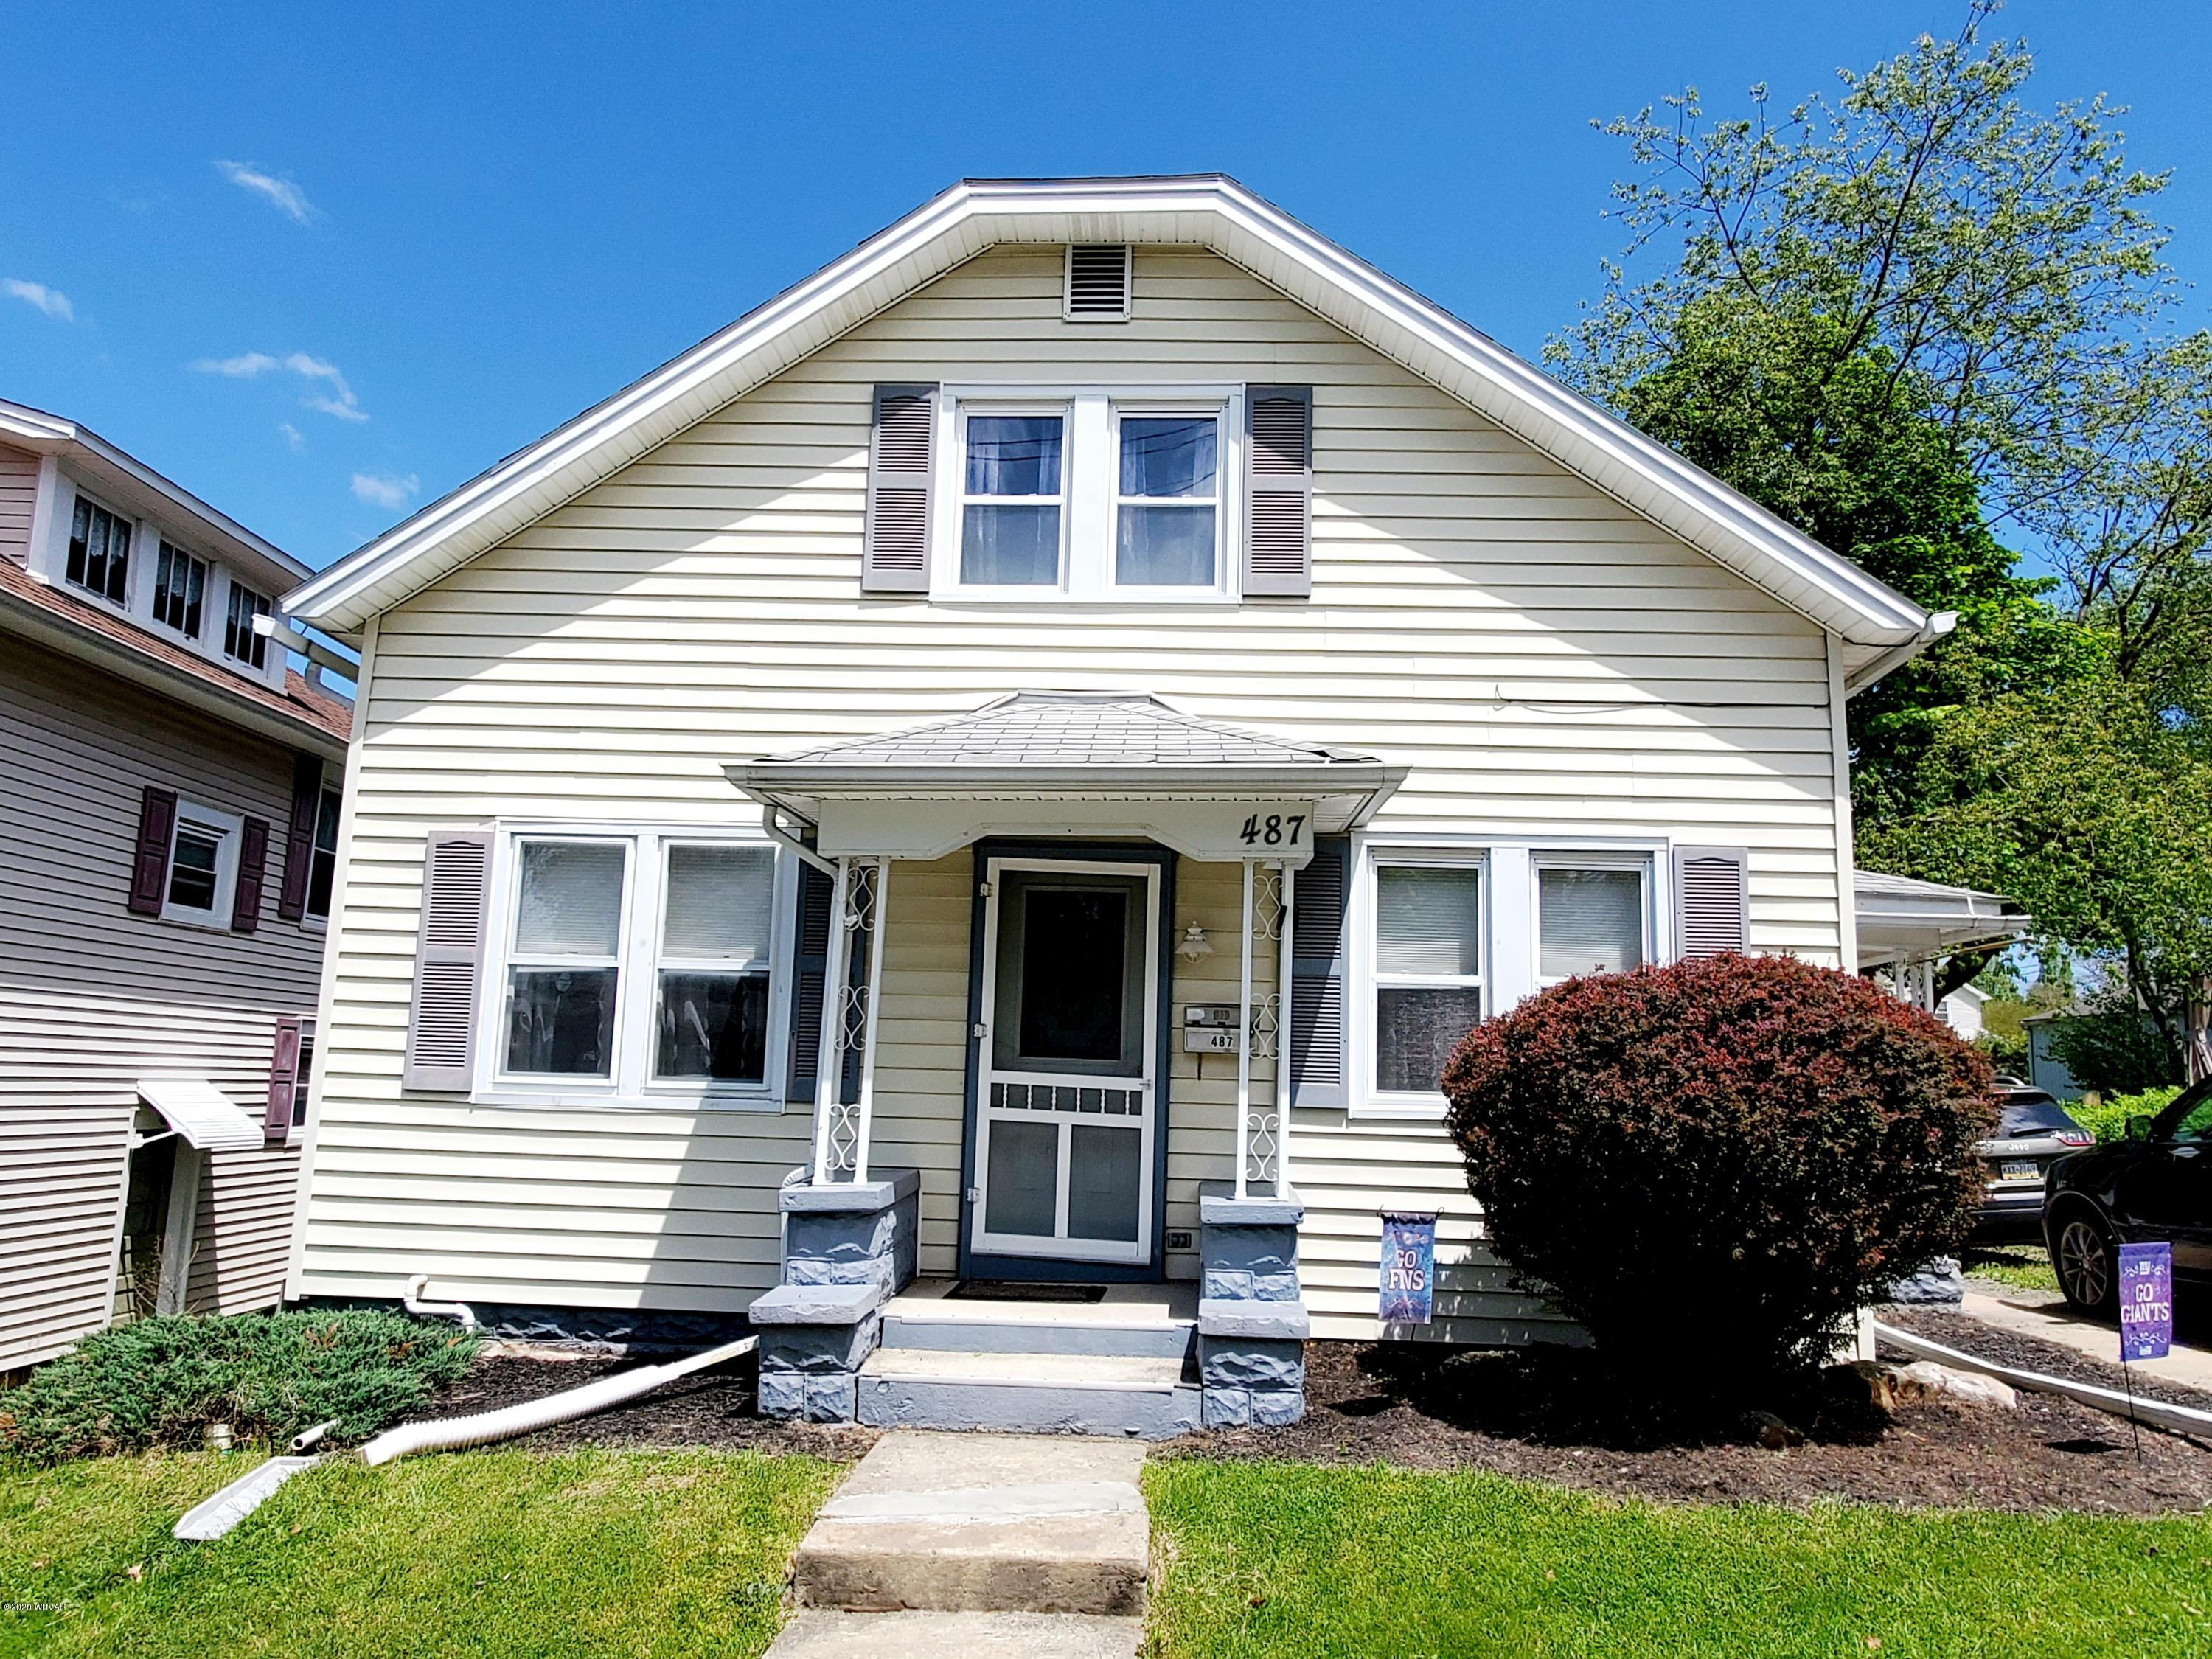 487 WINTHROP STREET,S. Williamsport,PA 17702,3 Bedrooms Bedrooms,2 BathroomsBathrooms,Residential,WINTHROP,WB-90143